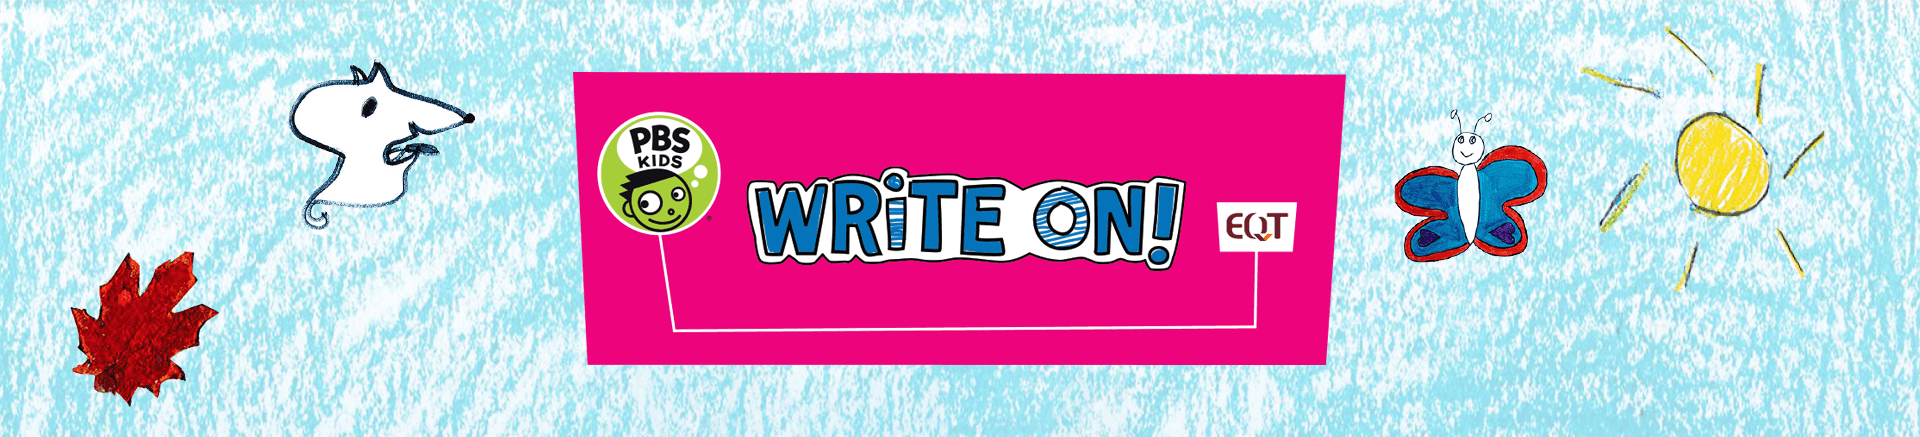 kids can do it essay contest Entering a story contest, especially one with a generous list of honorable mentions, can be a great way to encourage kids' interest in writing.